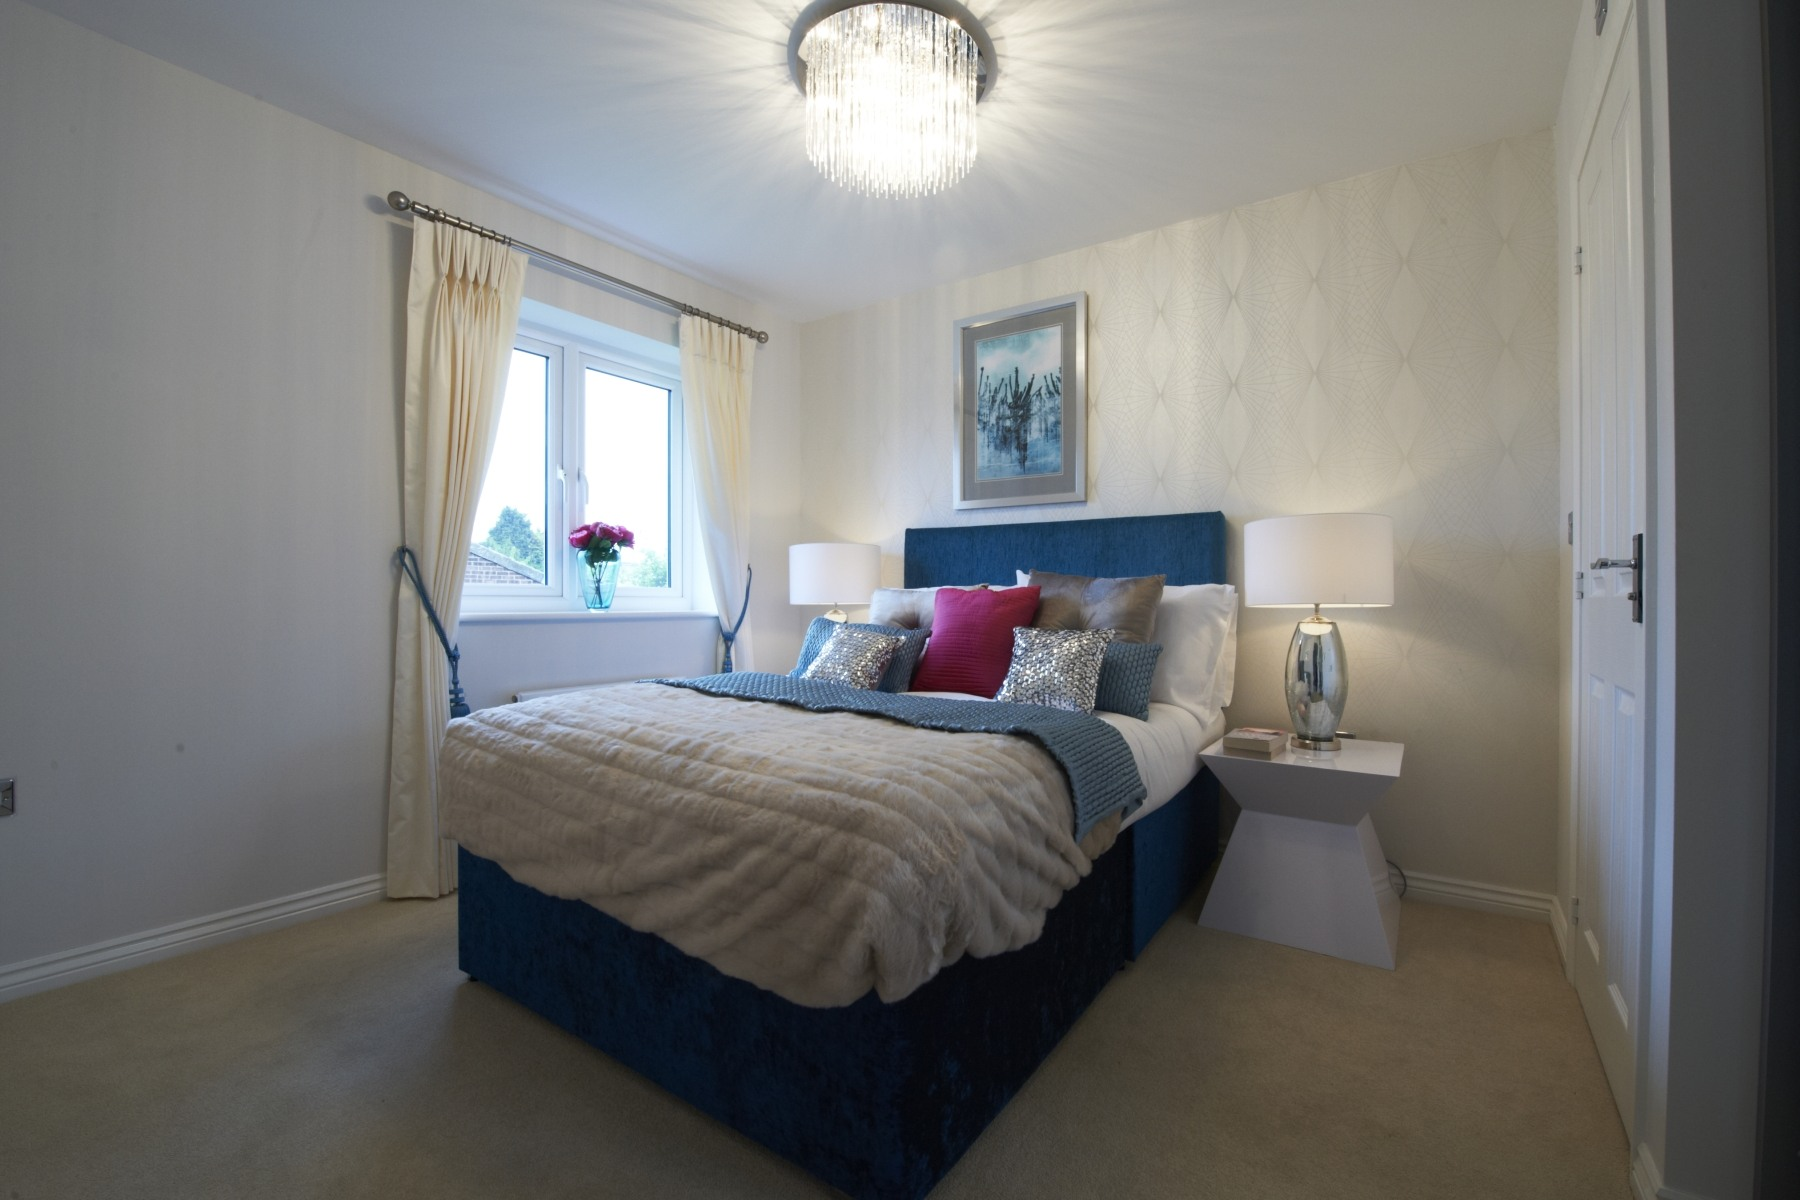 Taylor Wimpey Exeter - Cranbrook - Easdale example bedroom